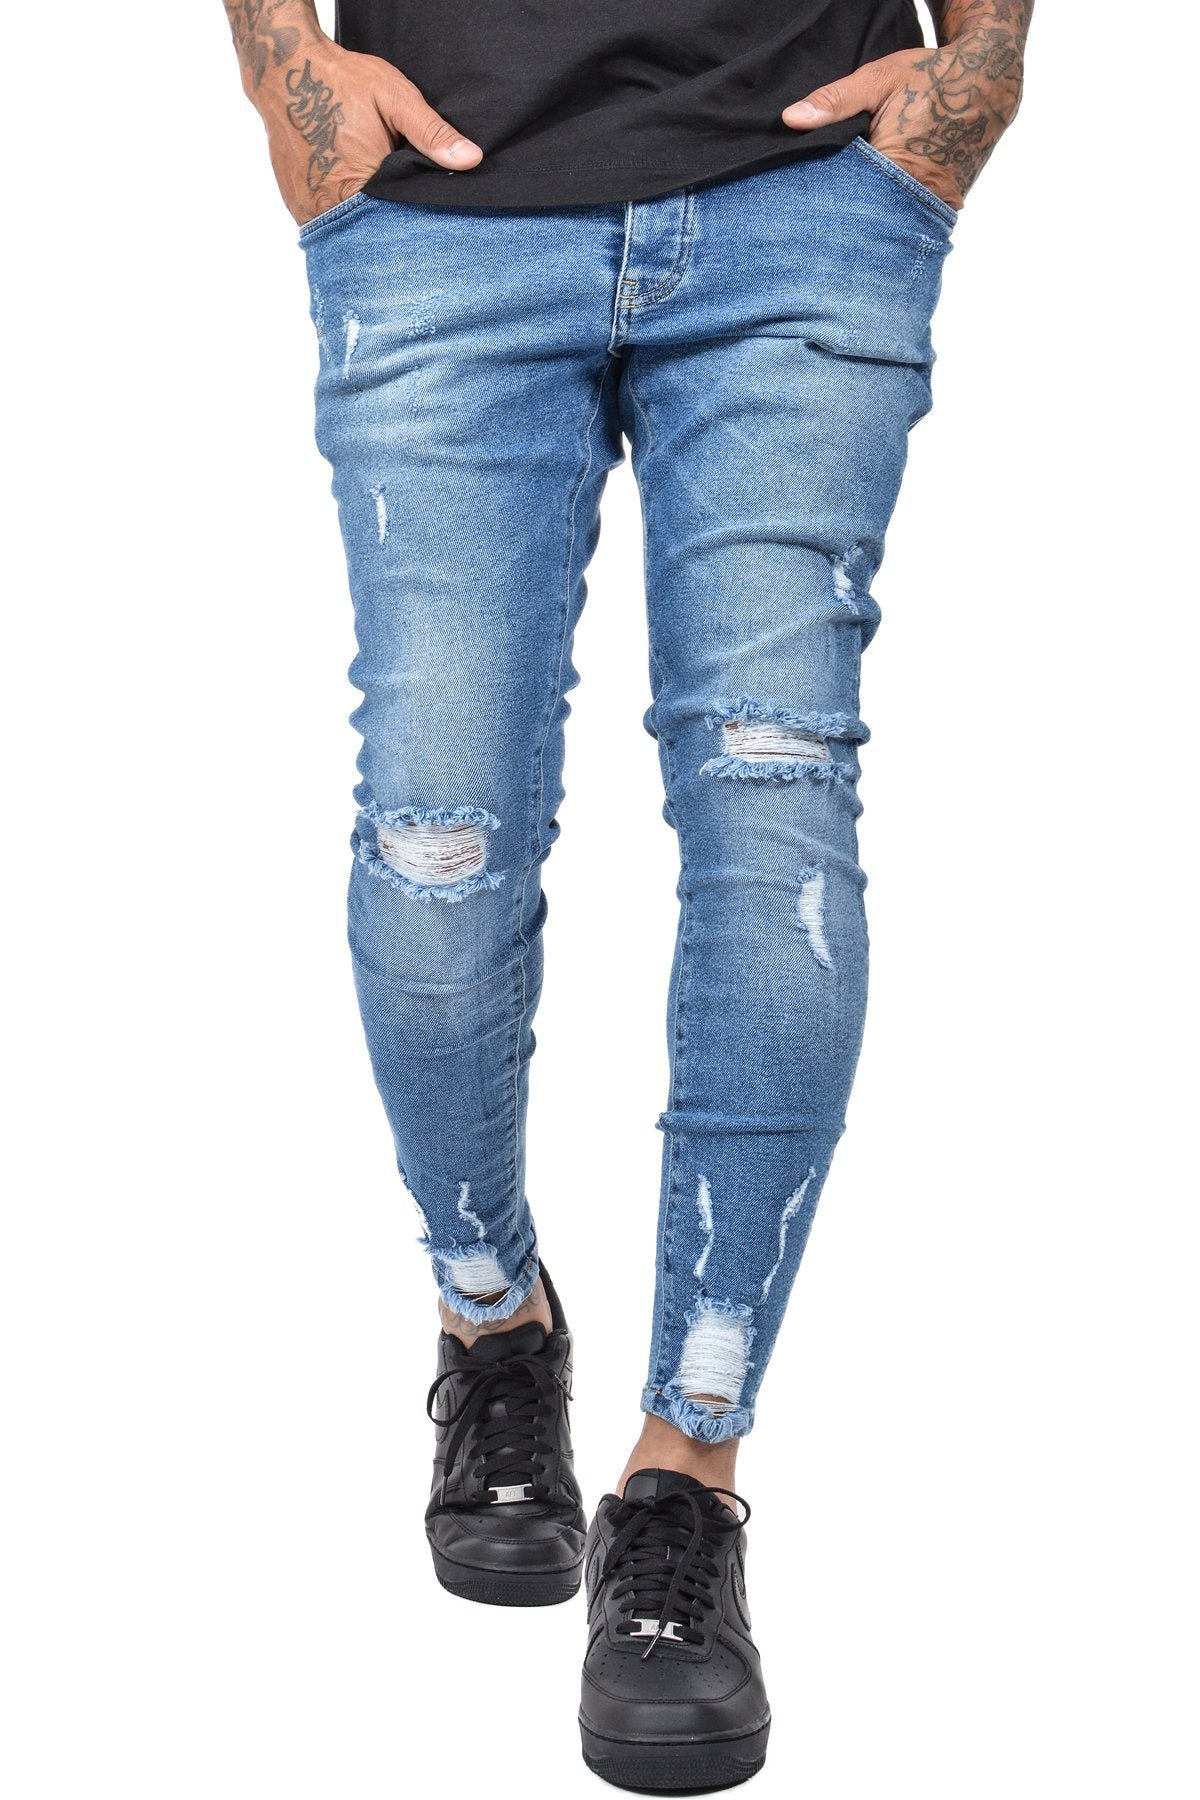 Sevilla Jeans Destroyed Mid Blue - PEGADOR - Dominate the Hype